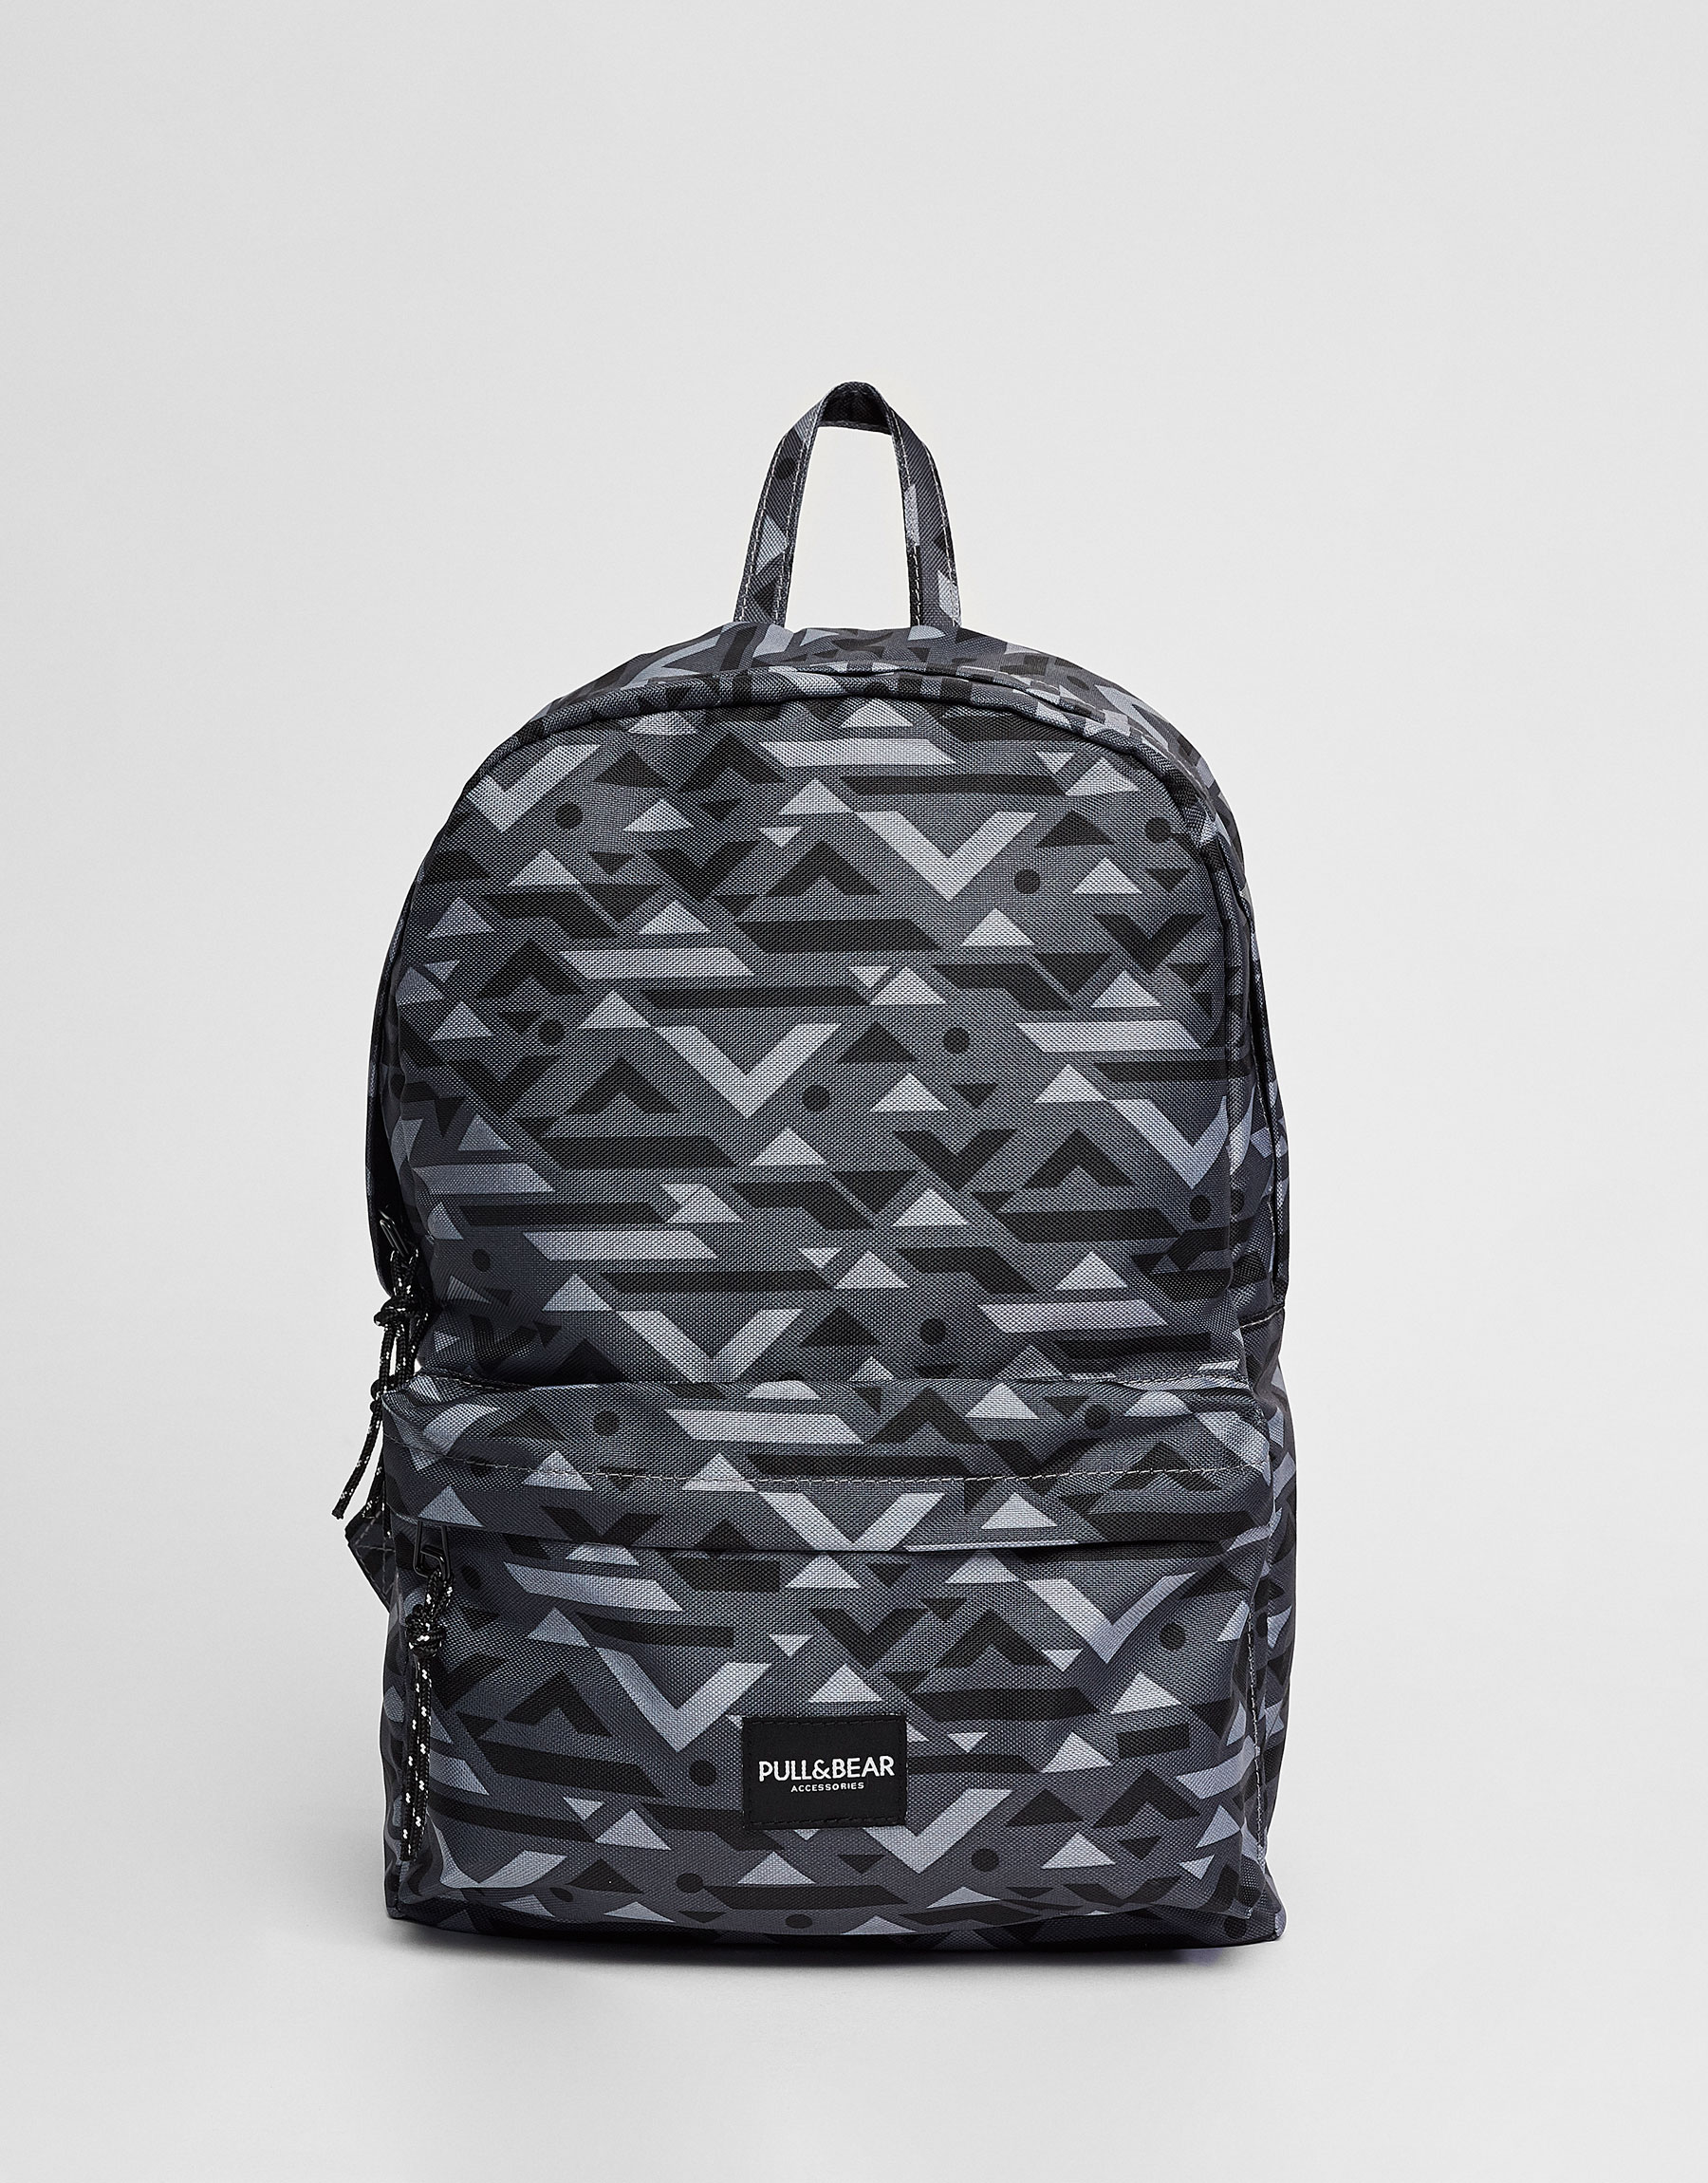 Geometric print backpack with logo label